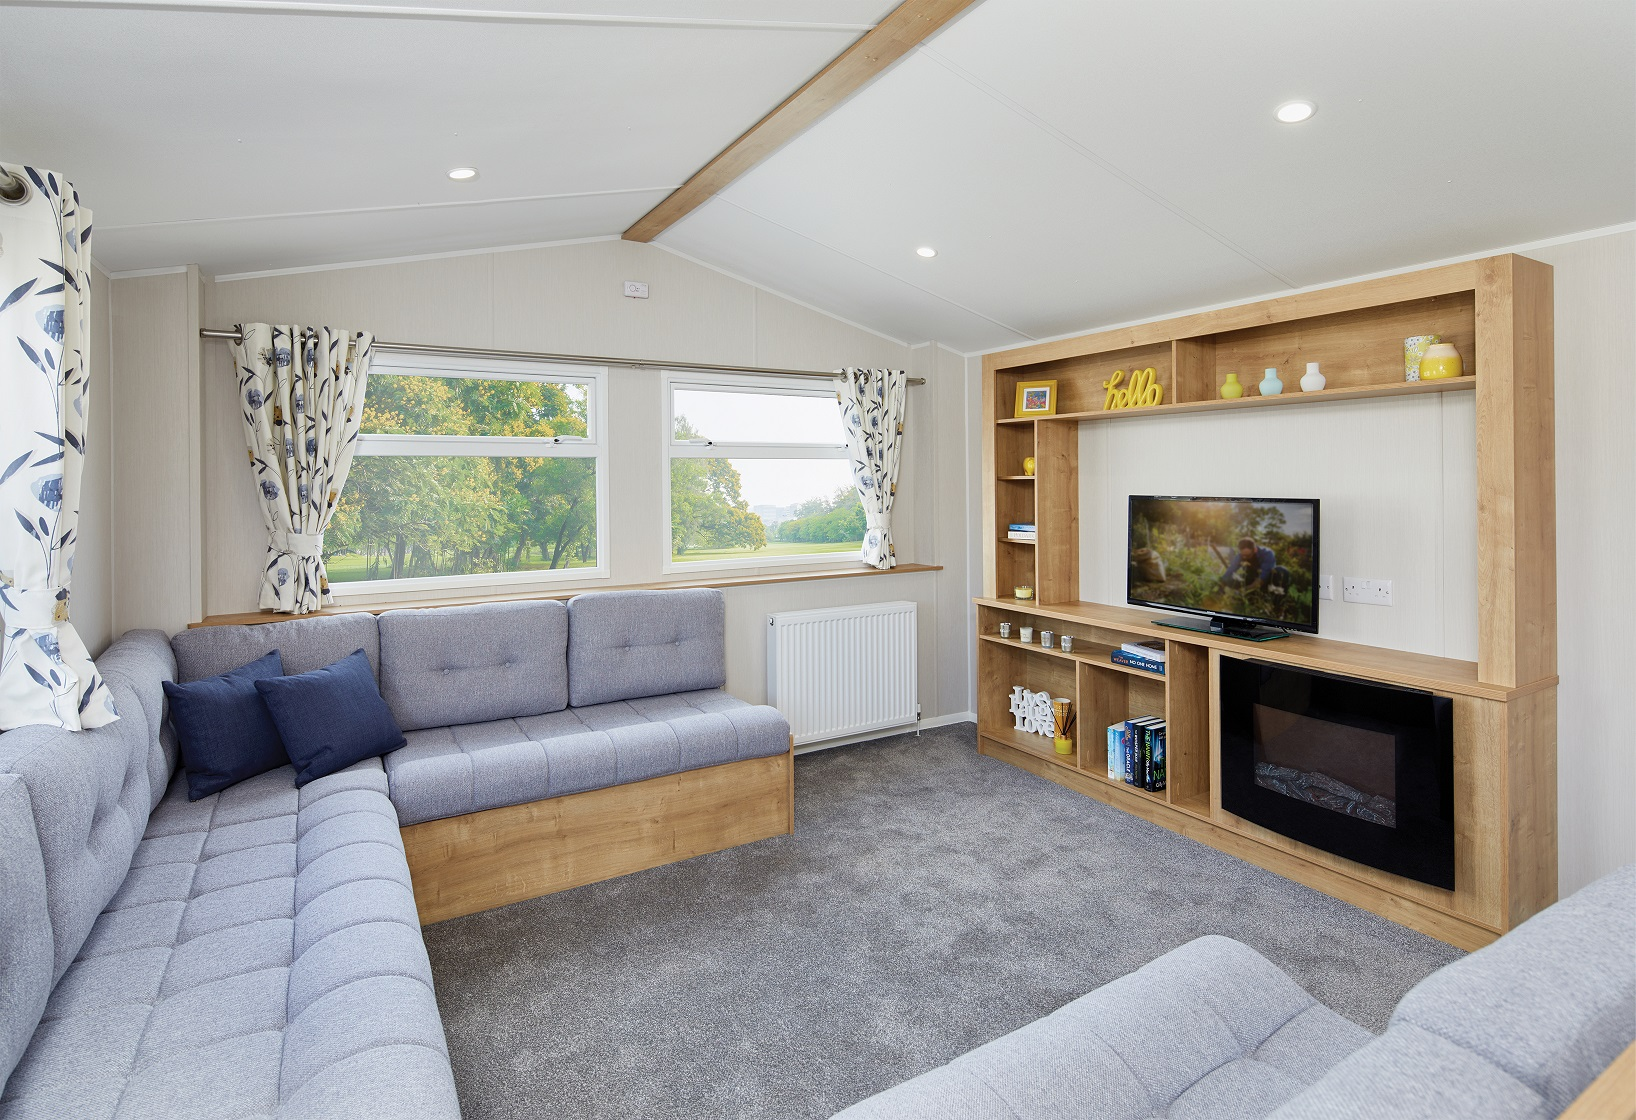 Willerby Kelston: Static Caravans and Holiday Homes for Sale on Caravan Parks, Belford, Northumberland Large Image 2